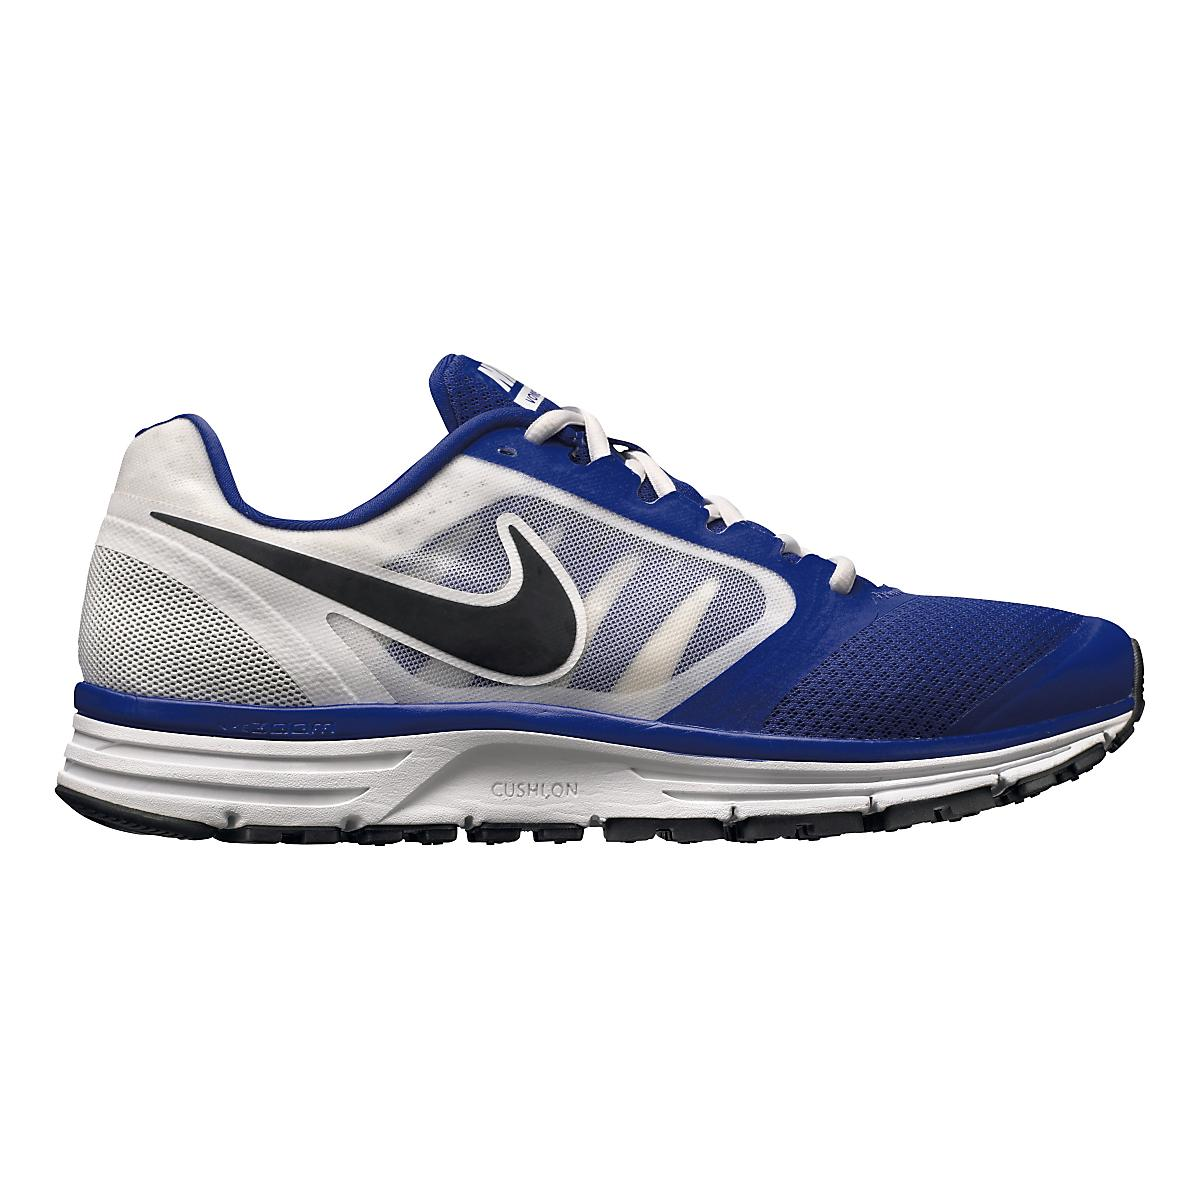 online retailer 673ac 3e5ea Mens Nike Zoom Vomero+ 8 Running Shoe at Road Runner Sports